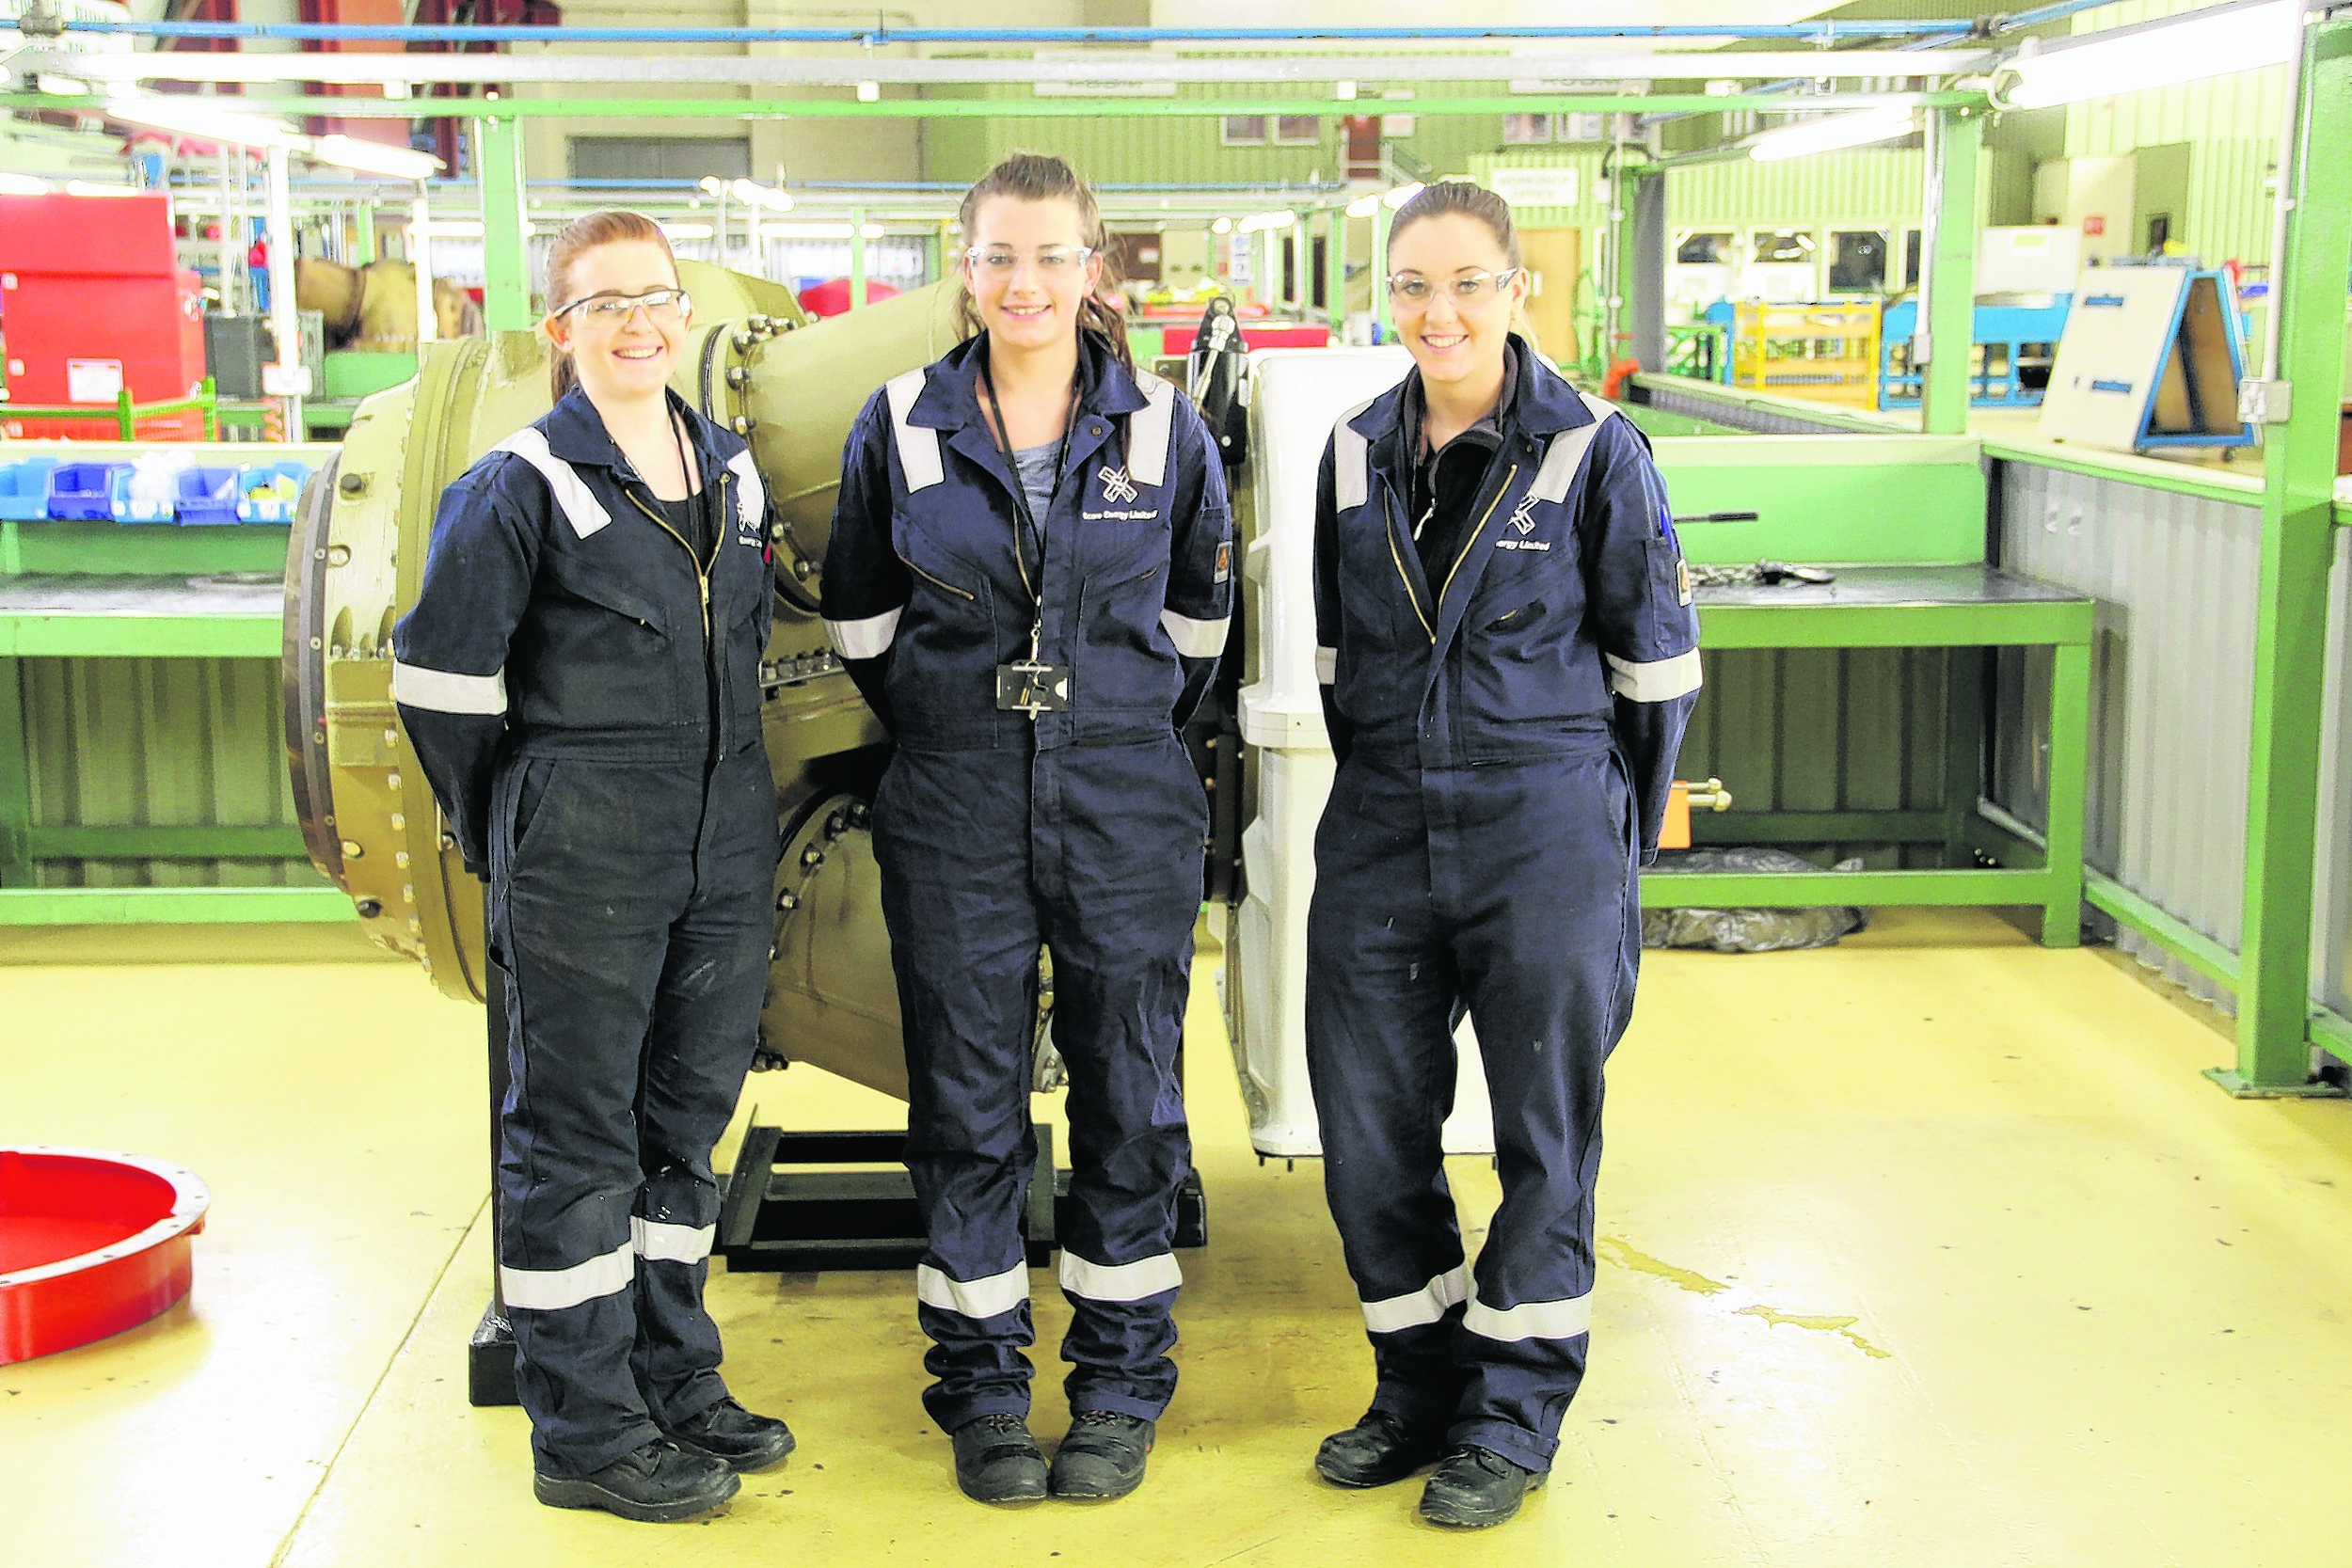 From left: apprentices Emma, Christine and Laura